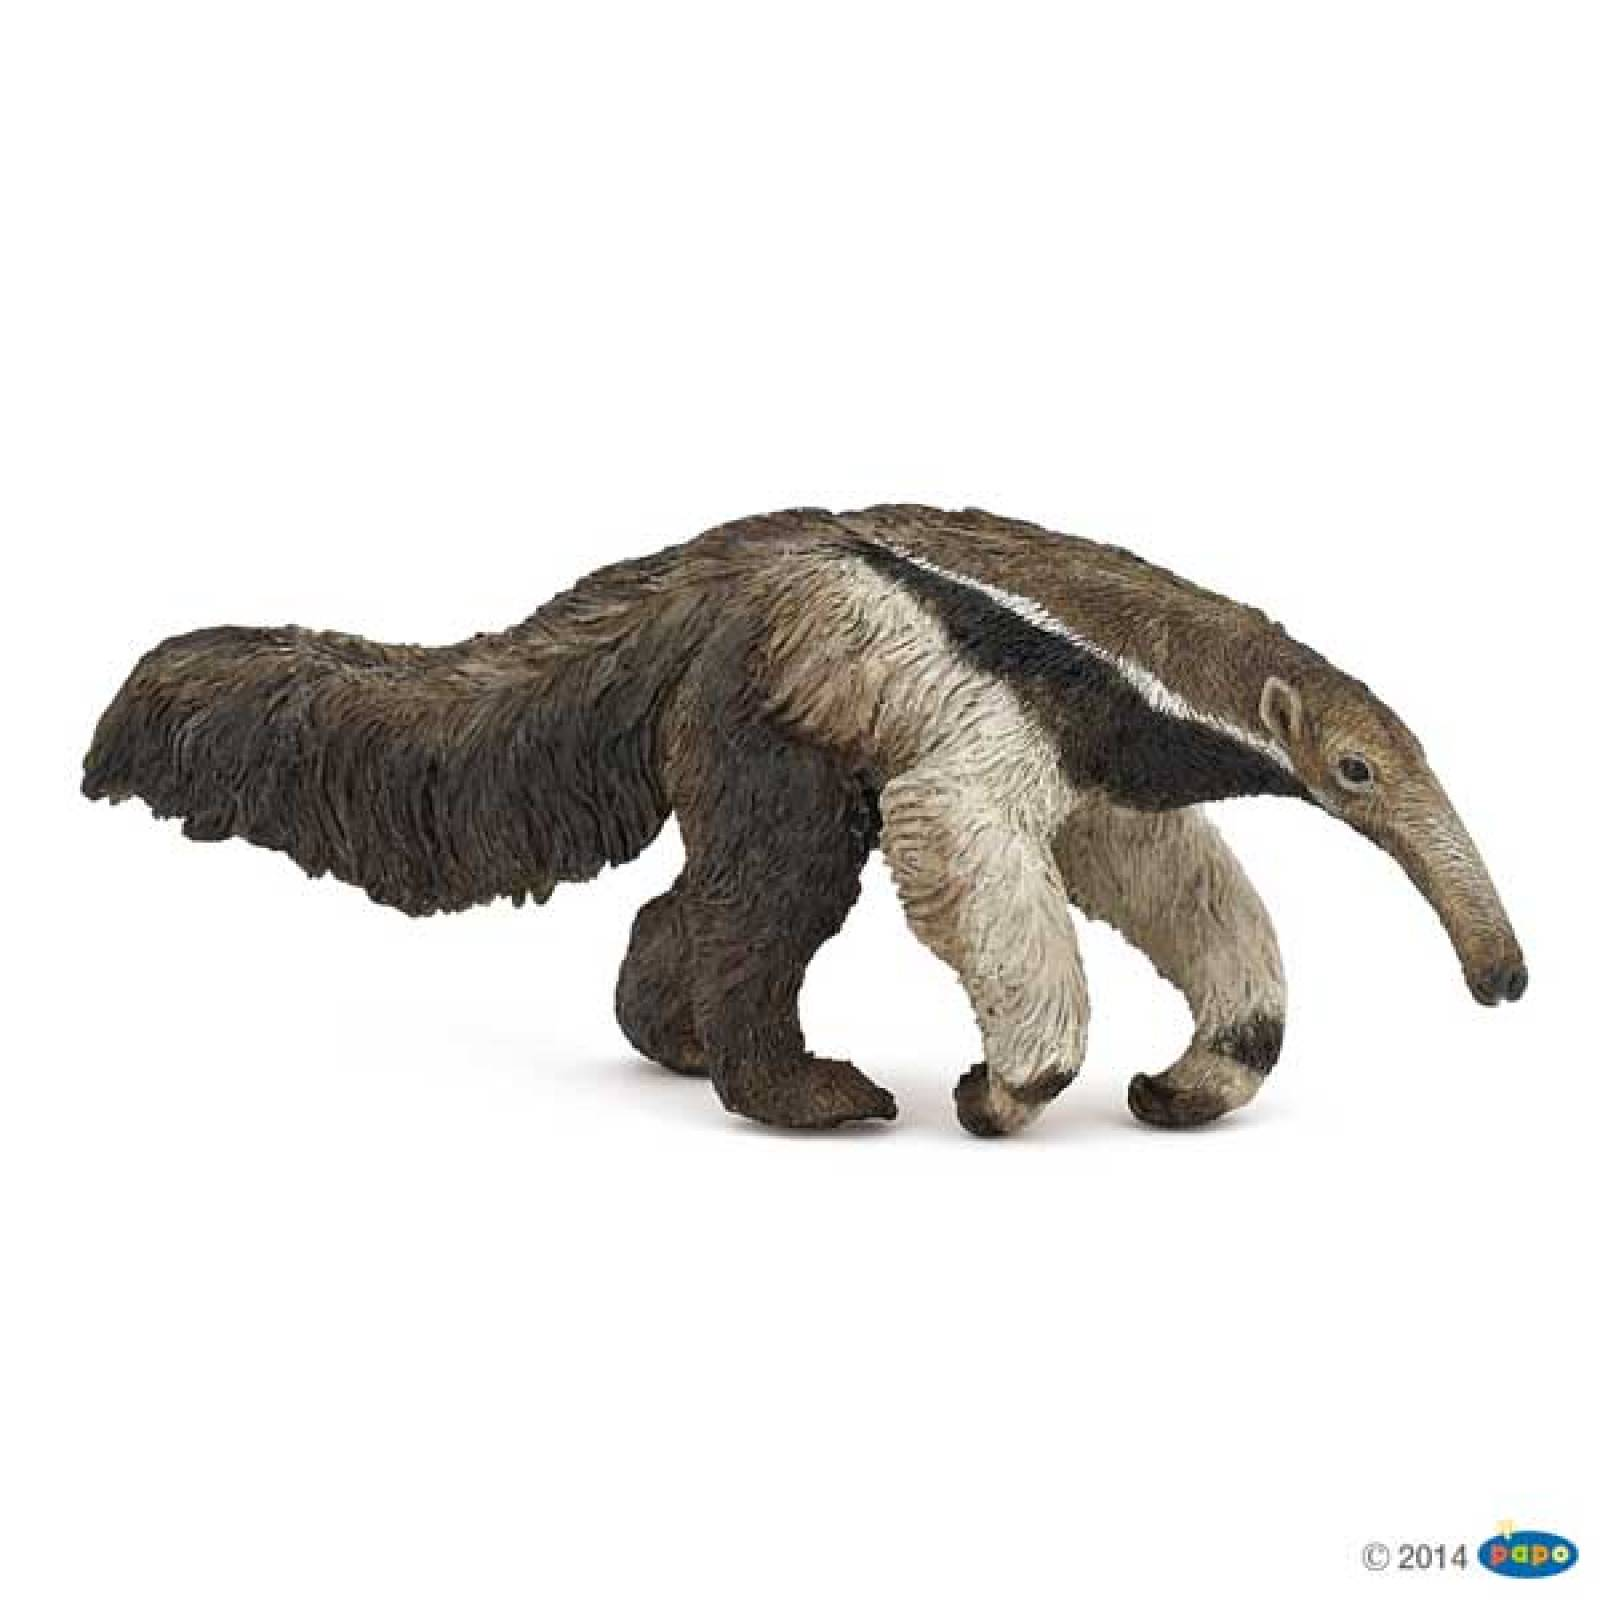 Giant Anteater PAPO WILD ANIMAL thumbnails